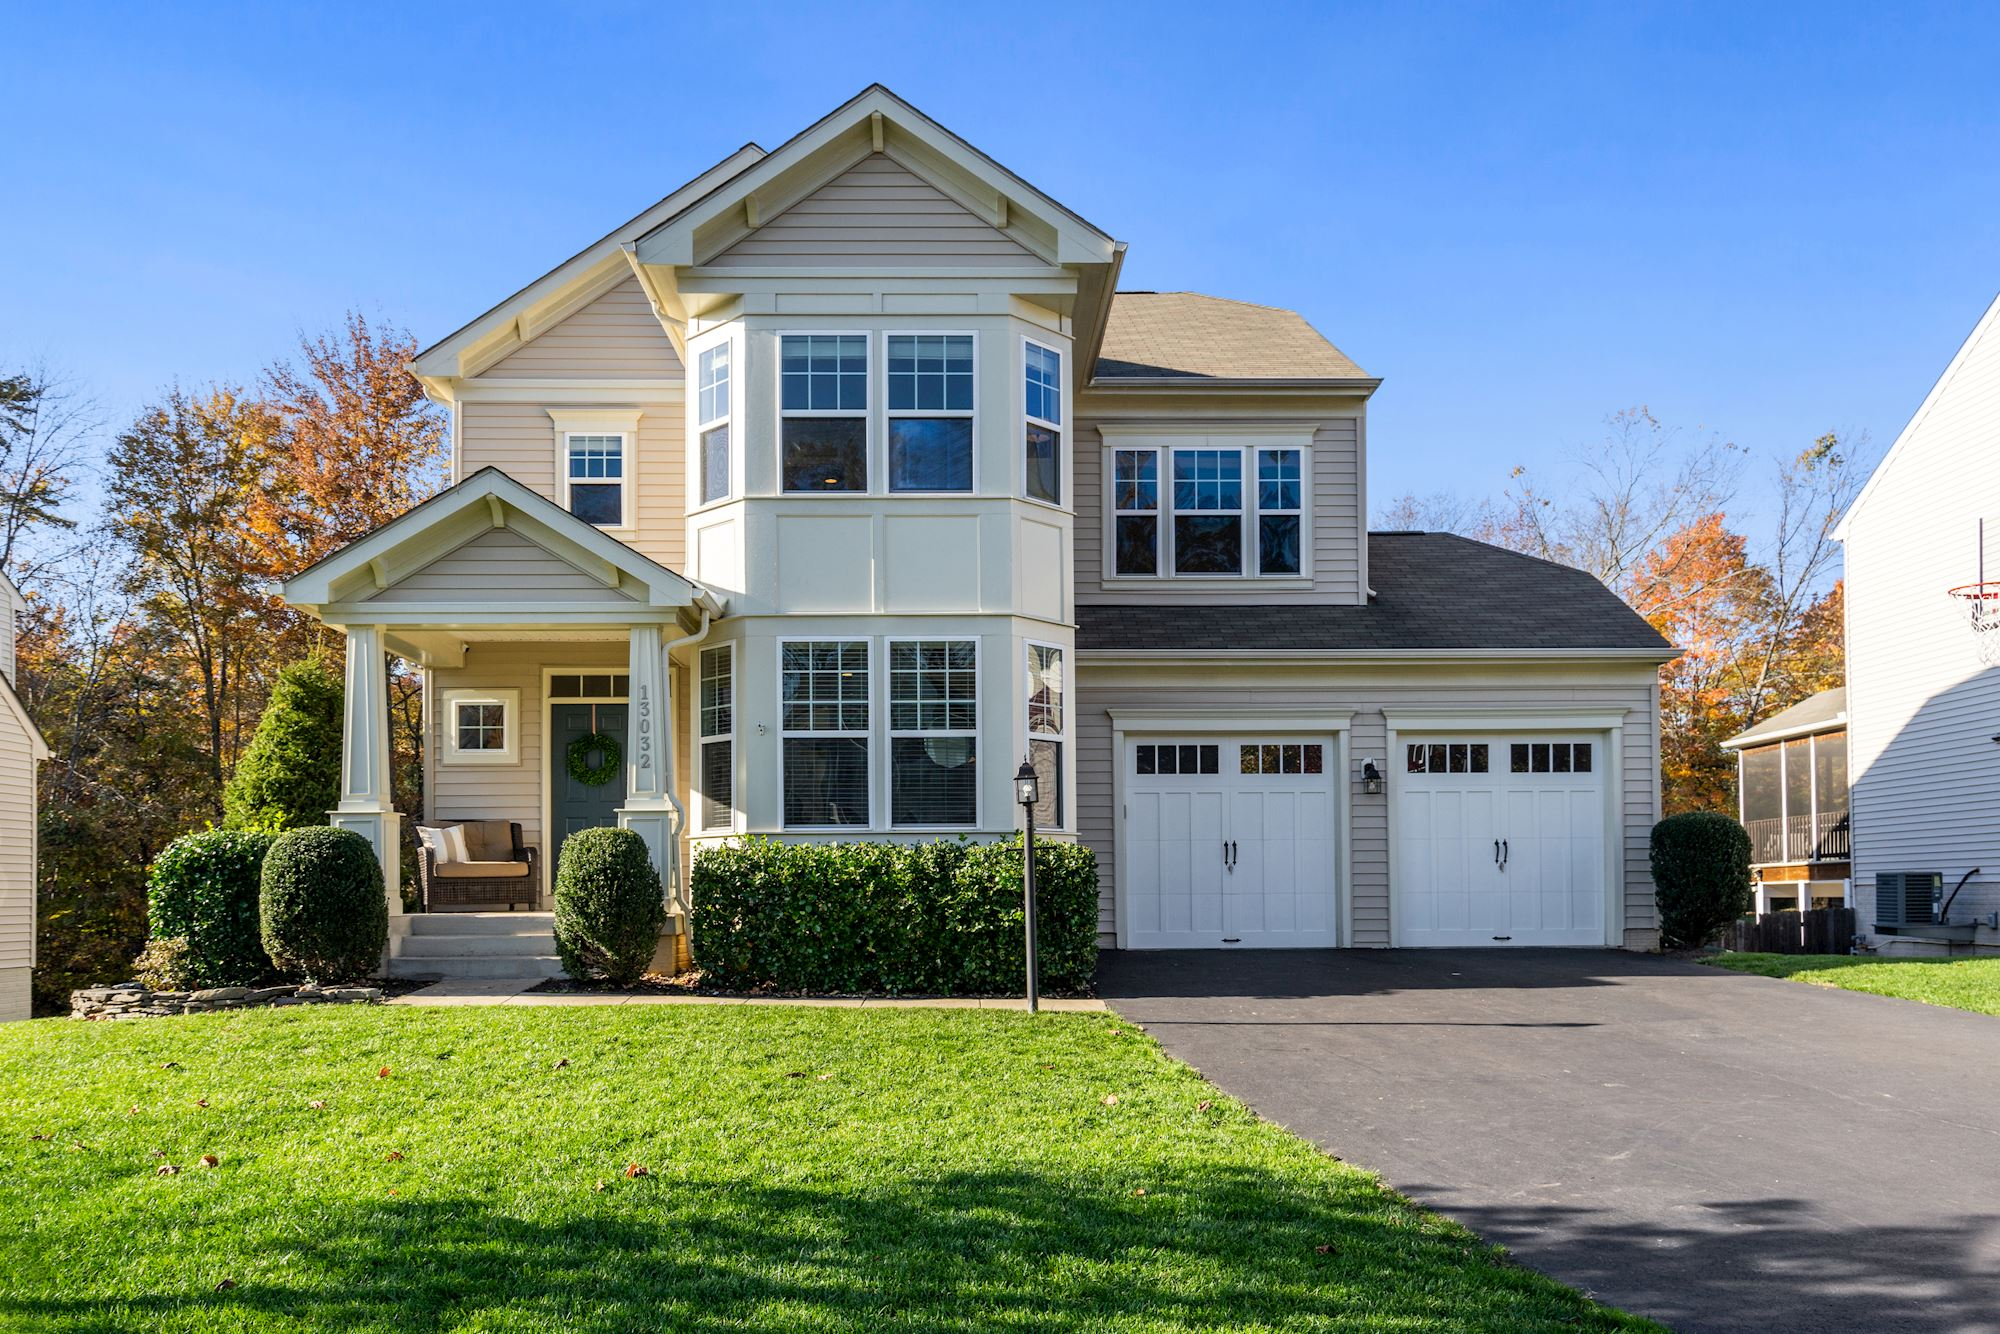 5 BD Craftsman Style Home Located in Wonderful Brierly Forest Community, Manassas VA